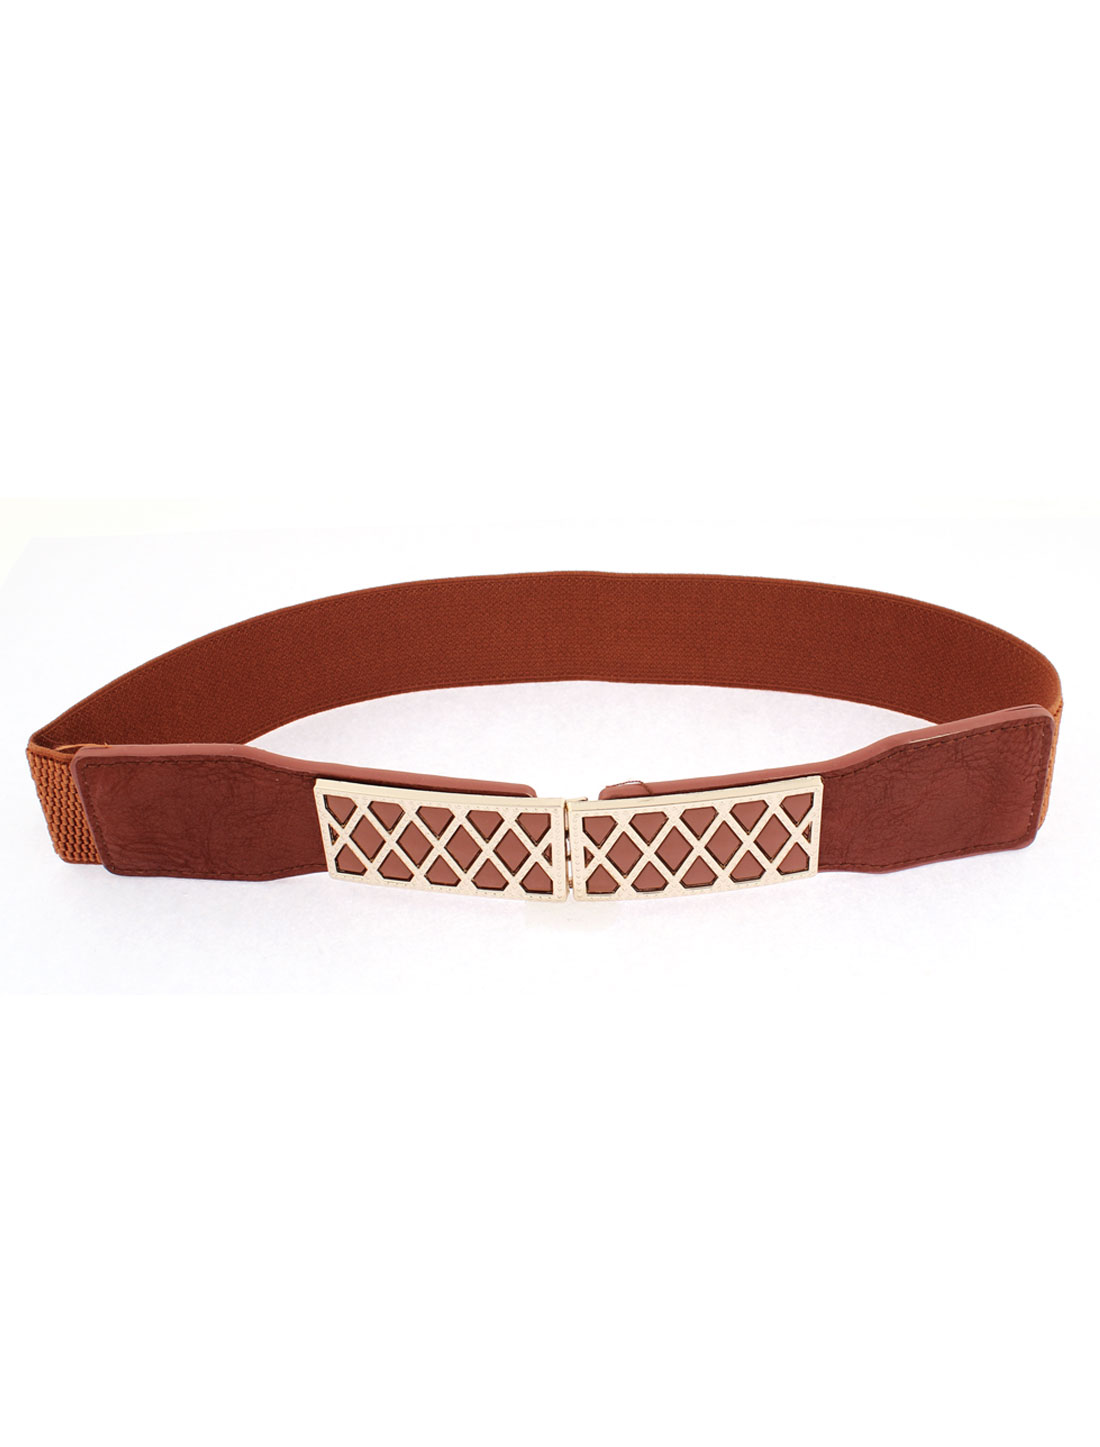 Elastic Stretch Waistband Waist Belt 61cm Long Camel Color for Women